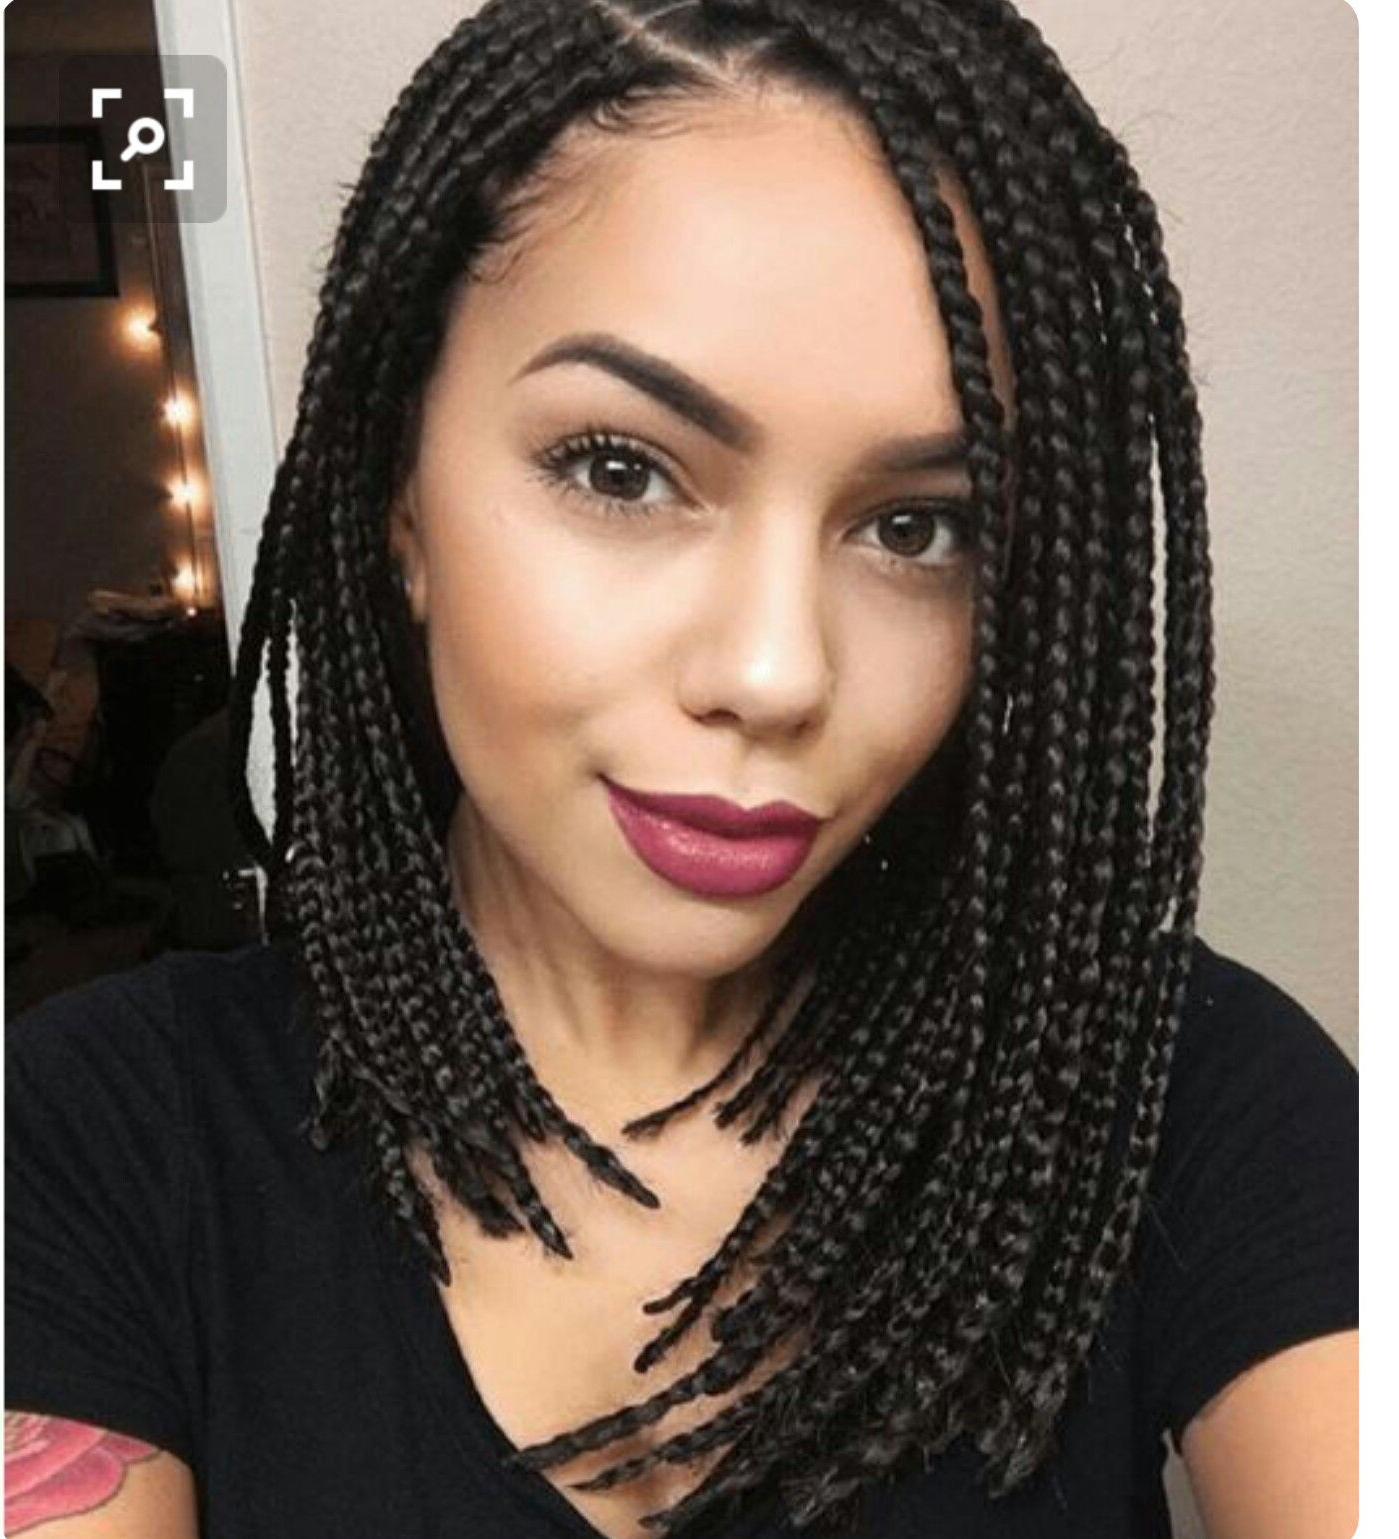 Hairstyles : Chic Braided Bob Hairstyle Gorgeous Short Jumbo In Widely Used Short And Chic Bob Braid Hairstyles (Gallery 3 of 20)